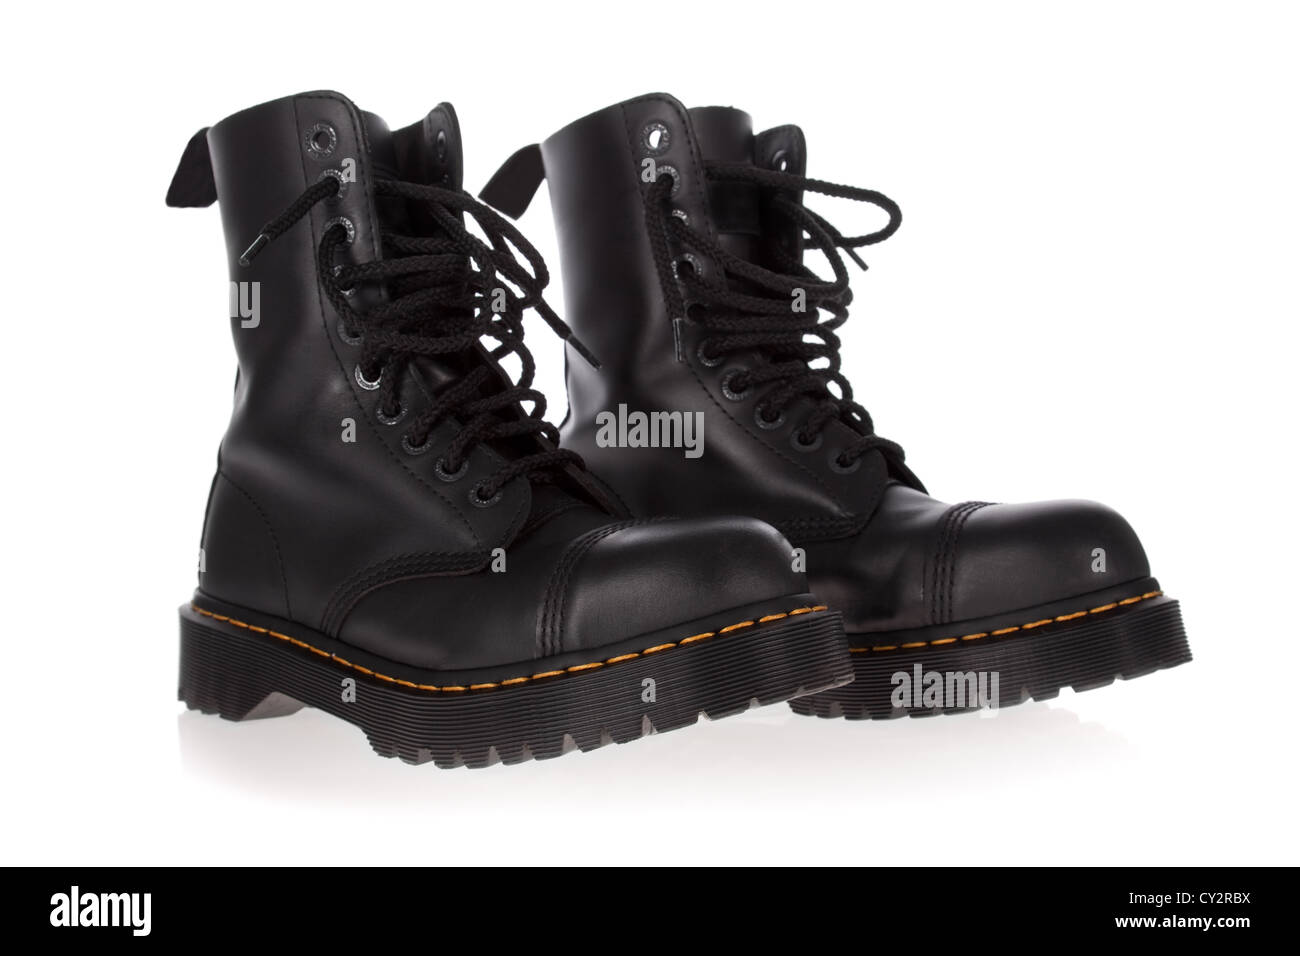 Military style black boots isolated on white background - Stock Image